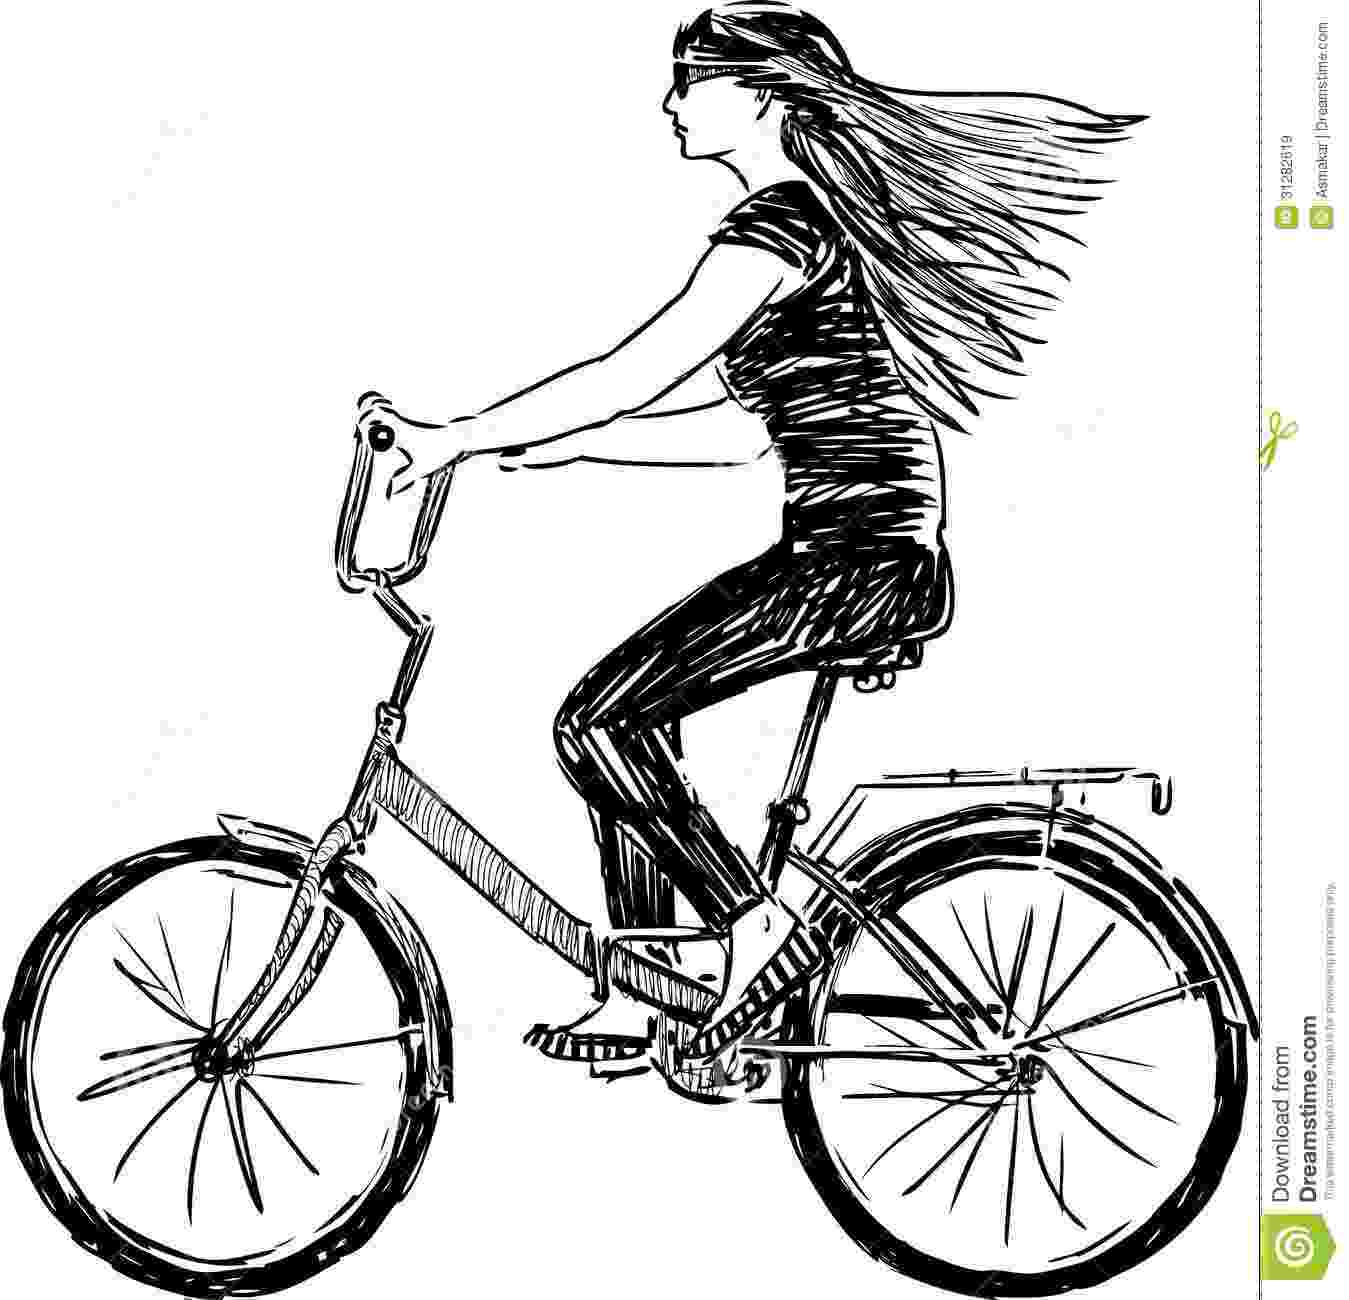 cycle sketch girl riding a bicycle stock vector illustration of sketch cycle